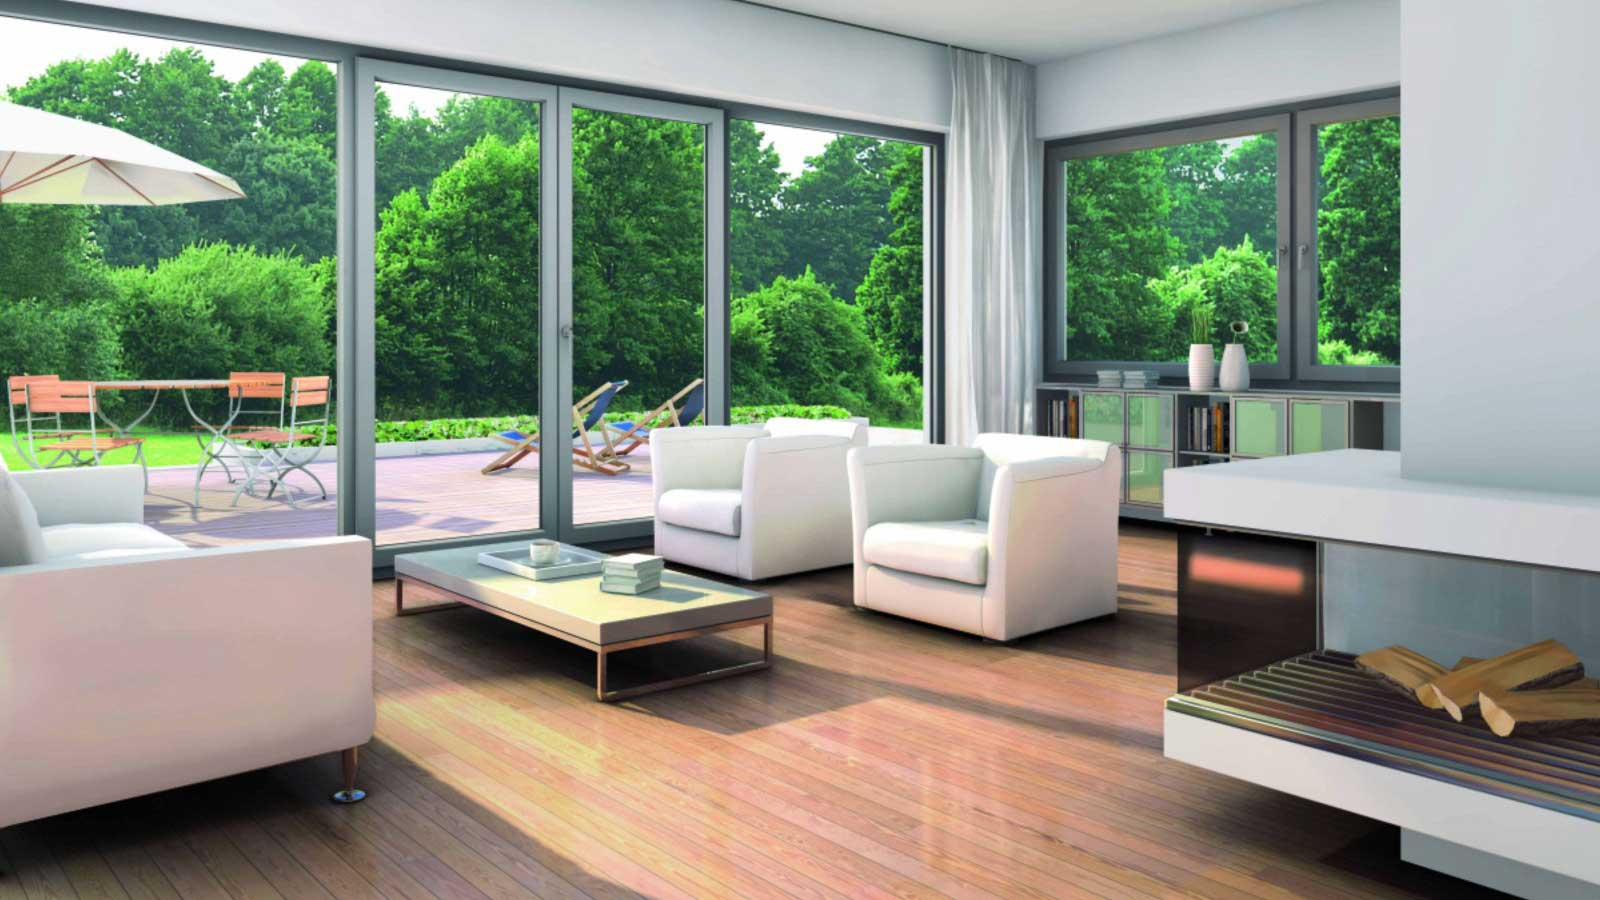 15 living room window designs decorating ideas design for Modern window house